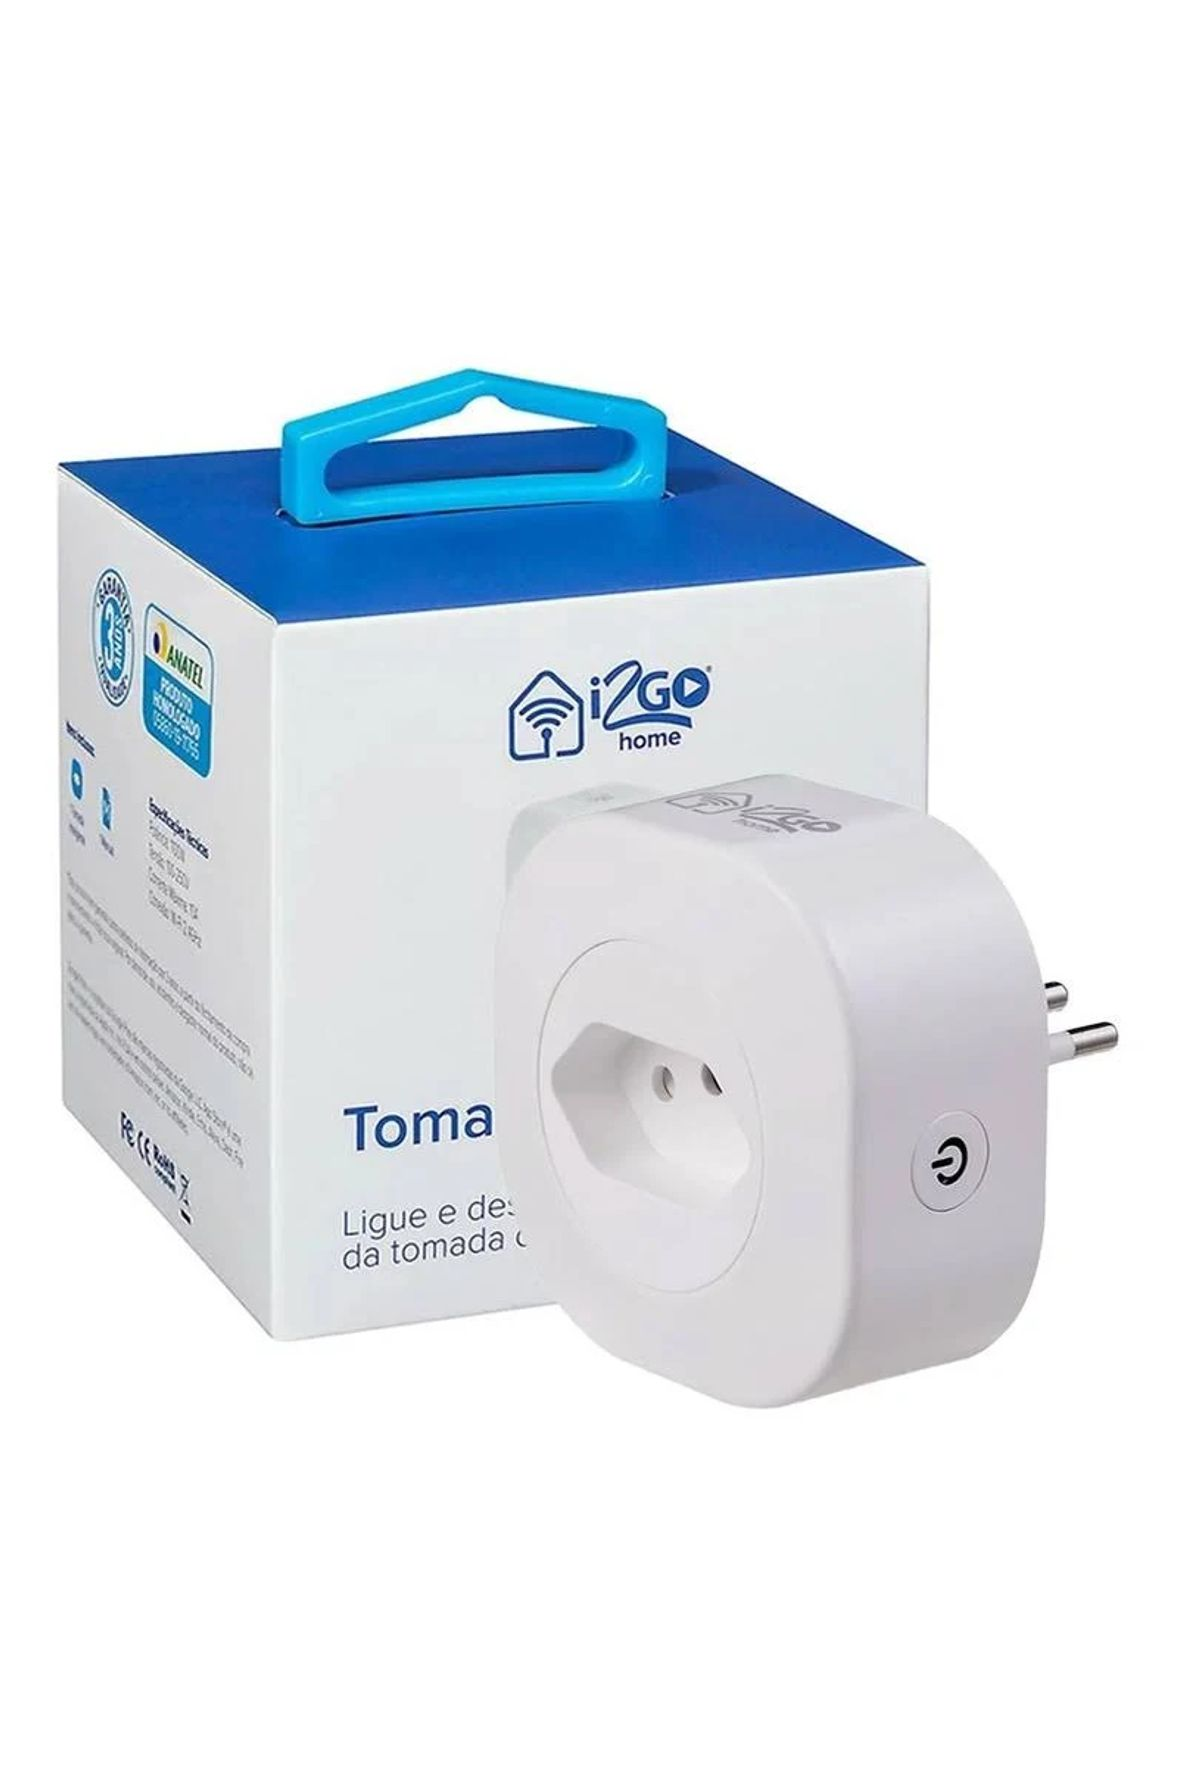 TOMADA INTELIGENTE SMART 12GWAL034 I2GO HOME